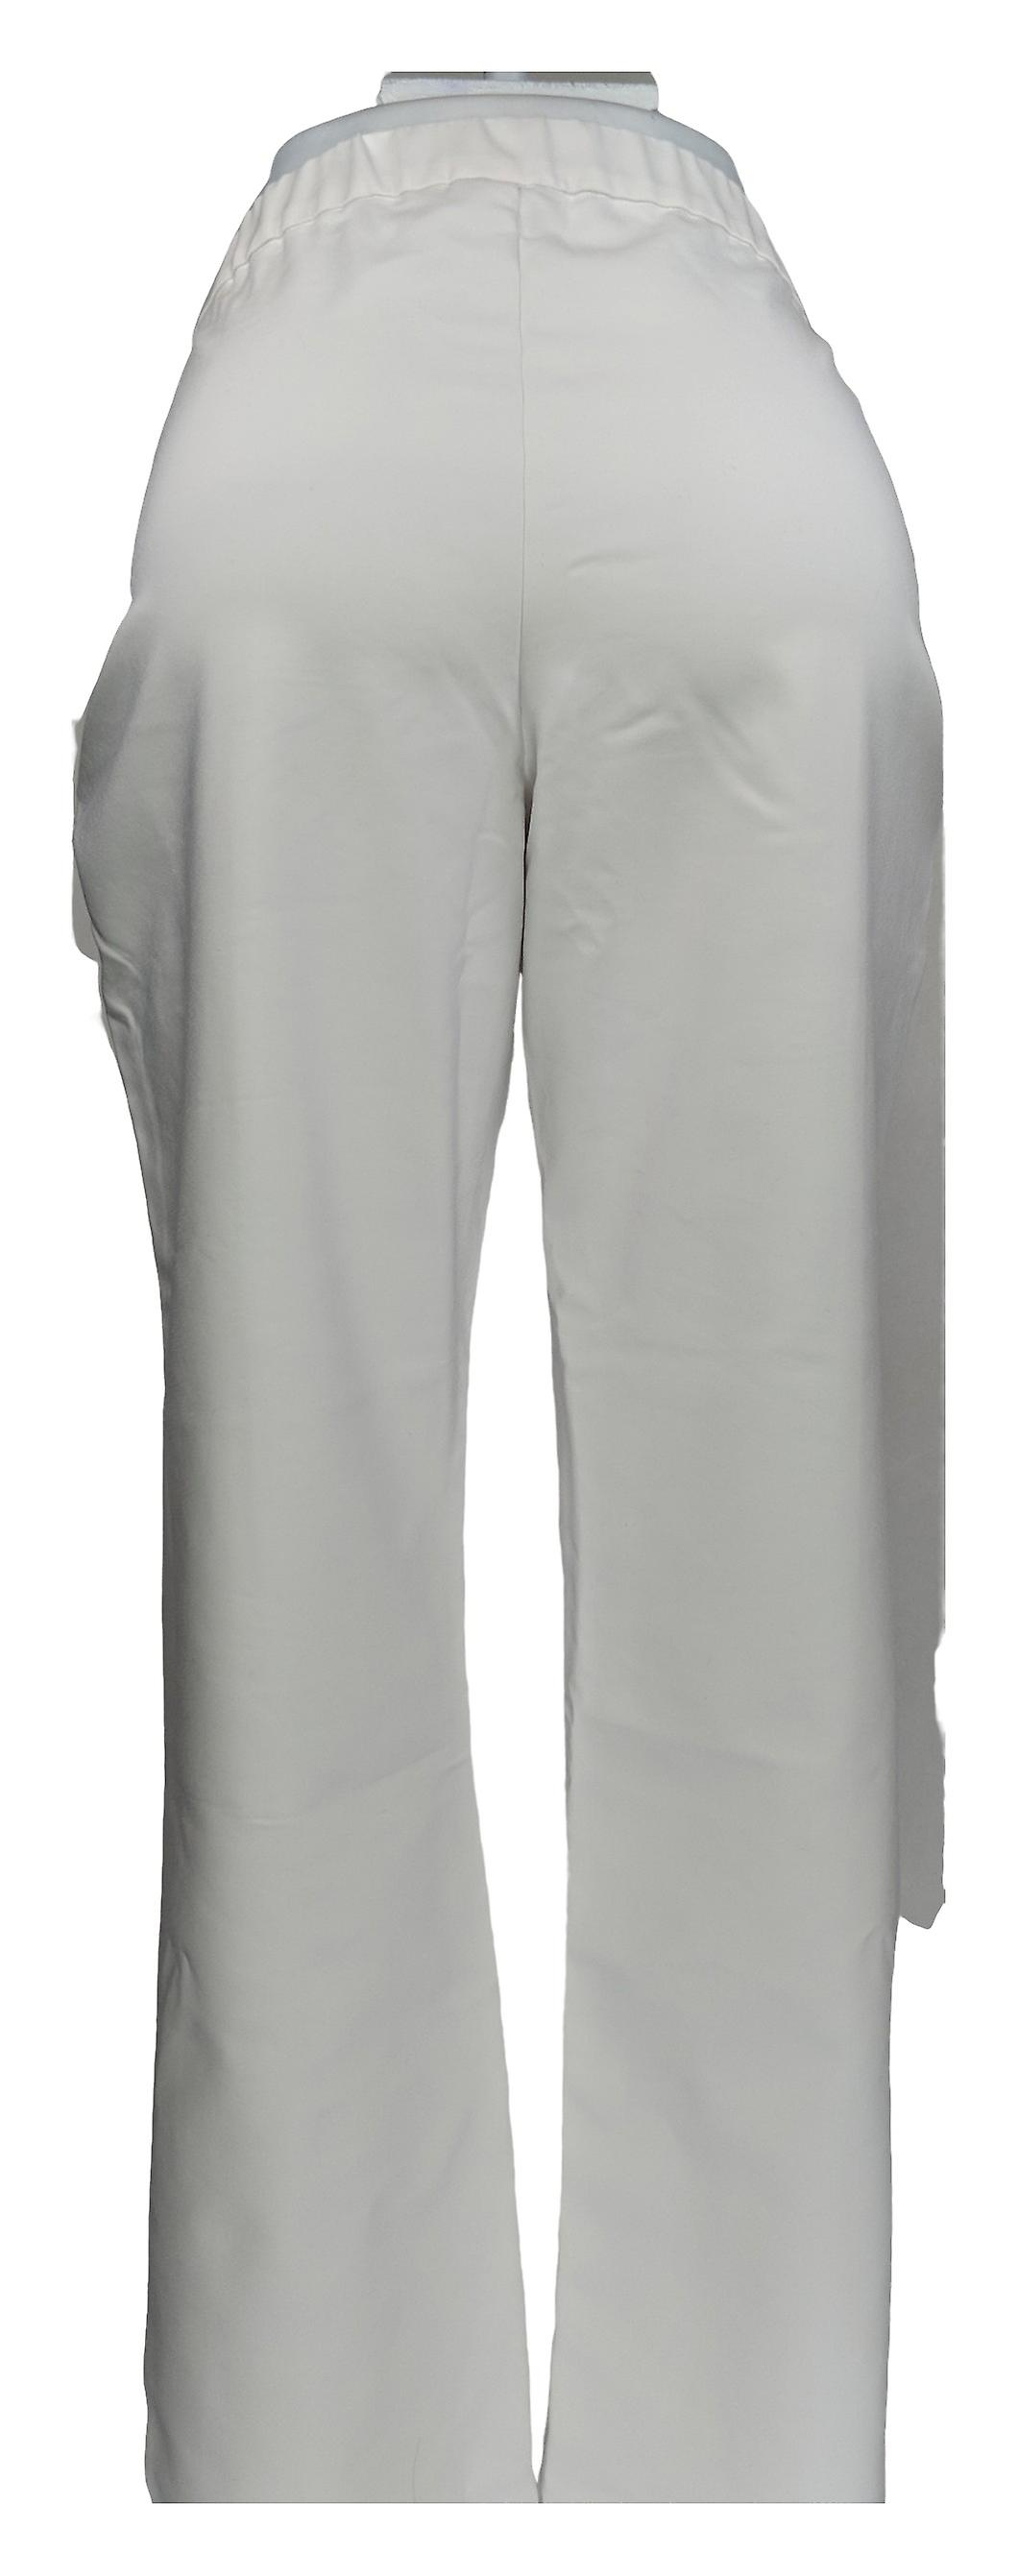 Denim & Co. Women's Pants Double Weave Straight-Leg White A349233 S4wFpY